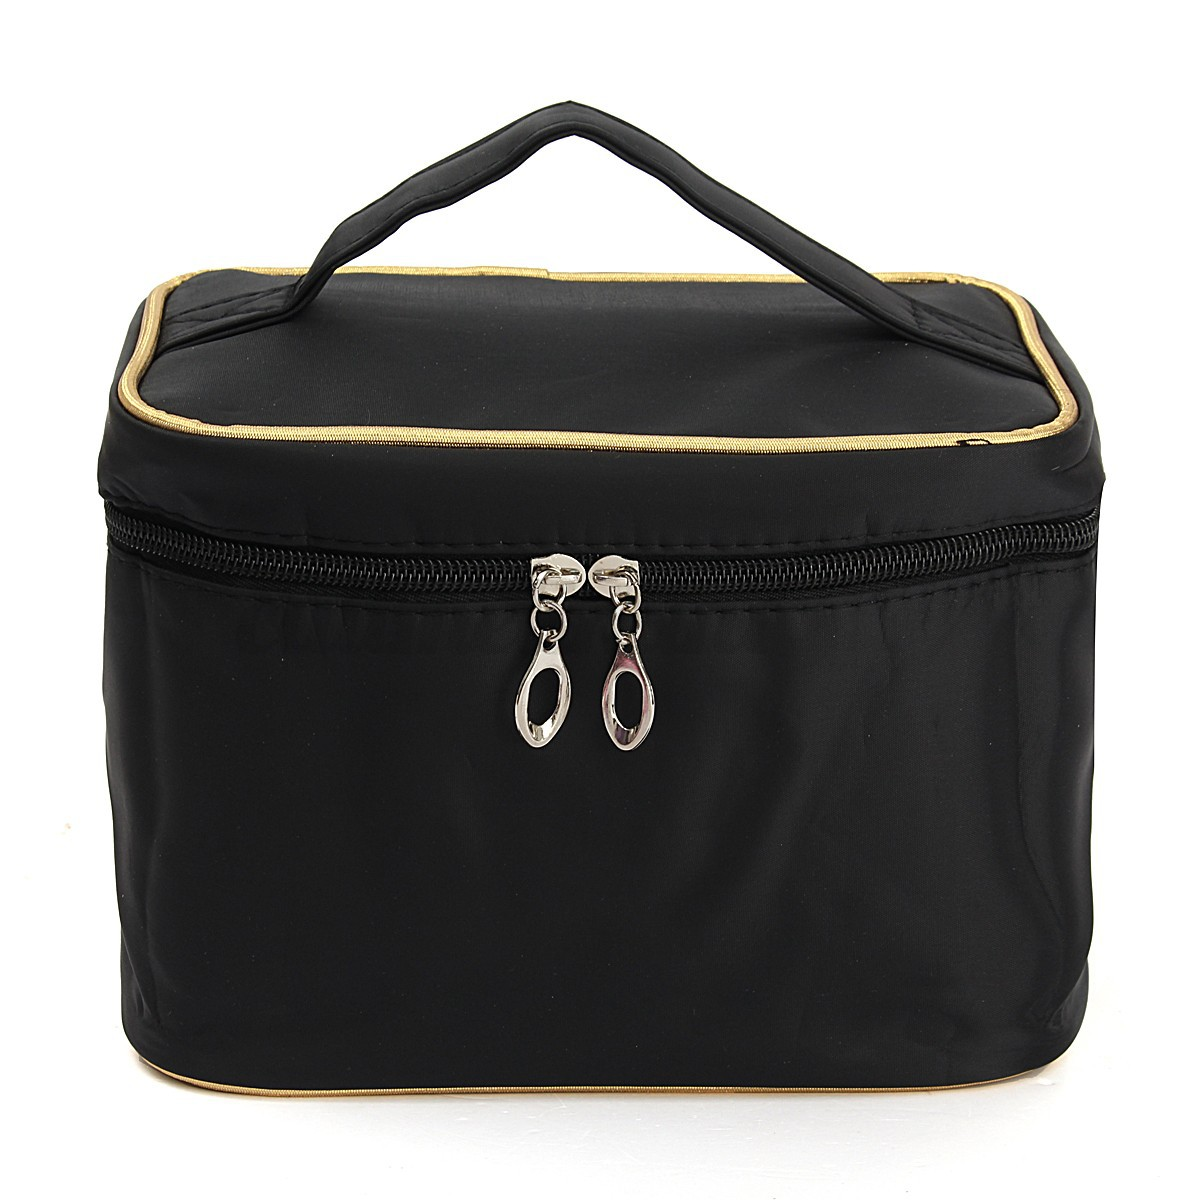 maquillage pochette de organisateur sac rangement main organiseur carte voyage ebay. Black Bedroom Furniture Sets. Home Design Ideas